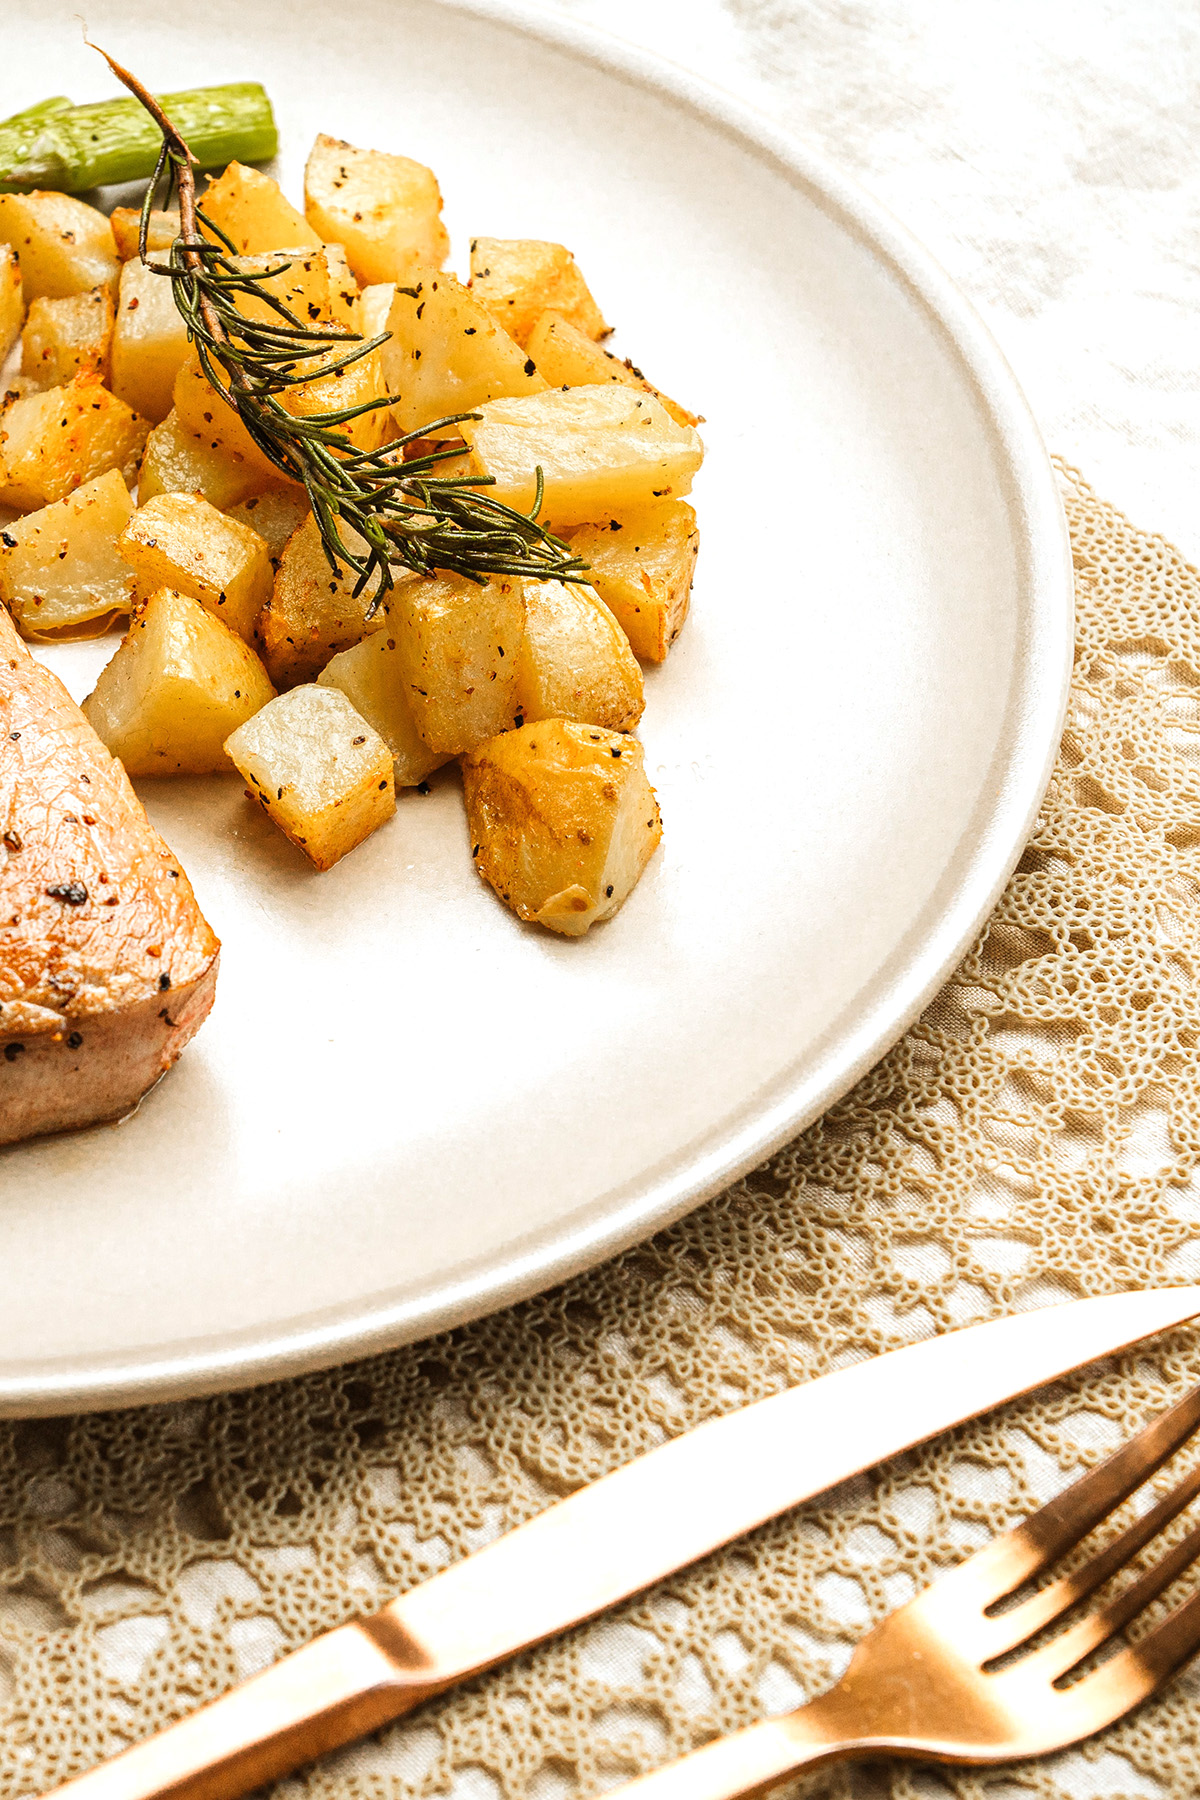 pork chop and potatoes on a plate